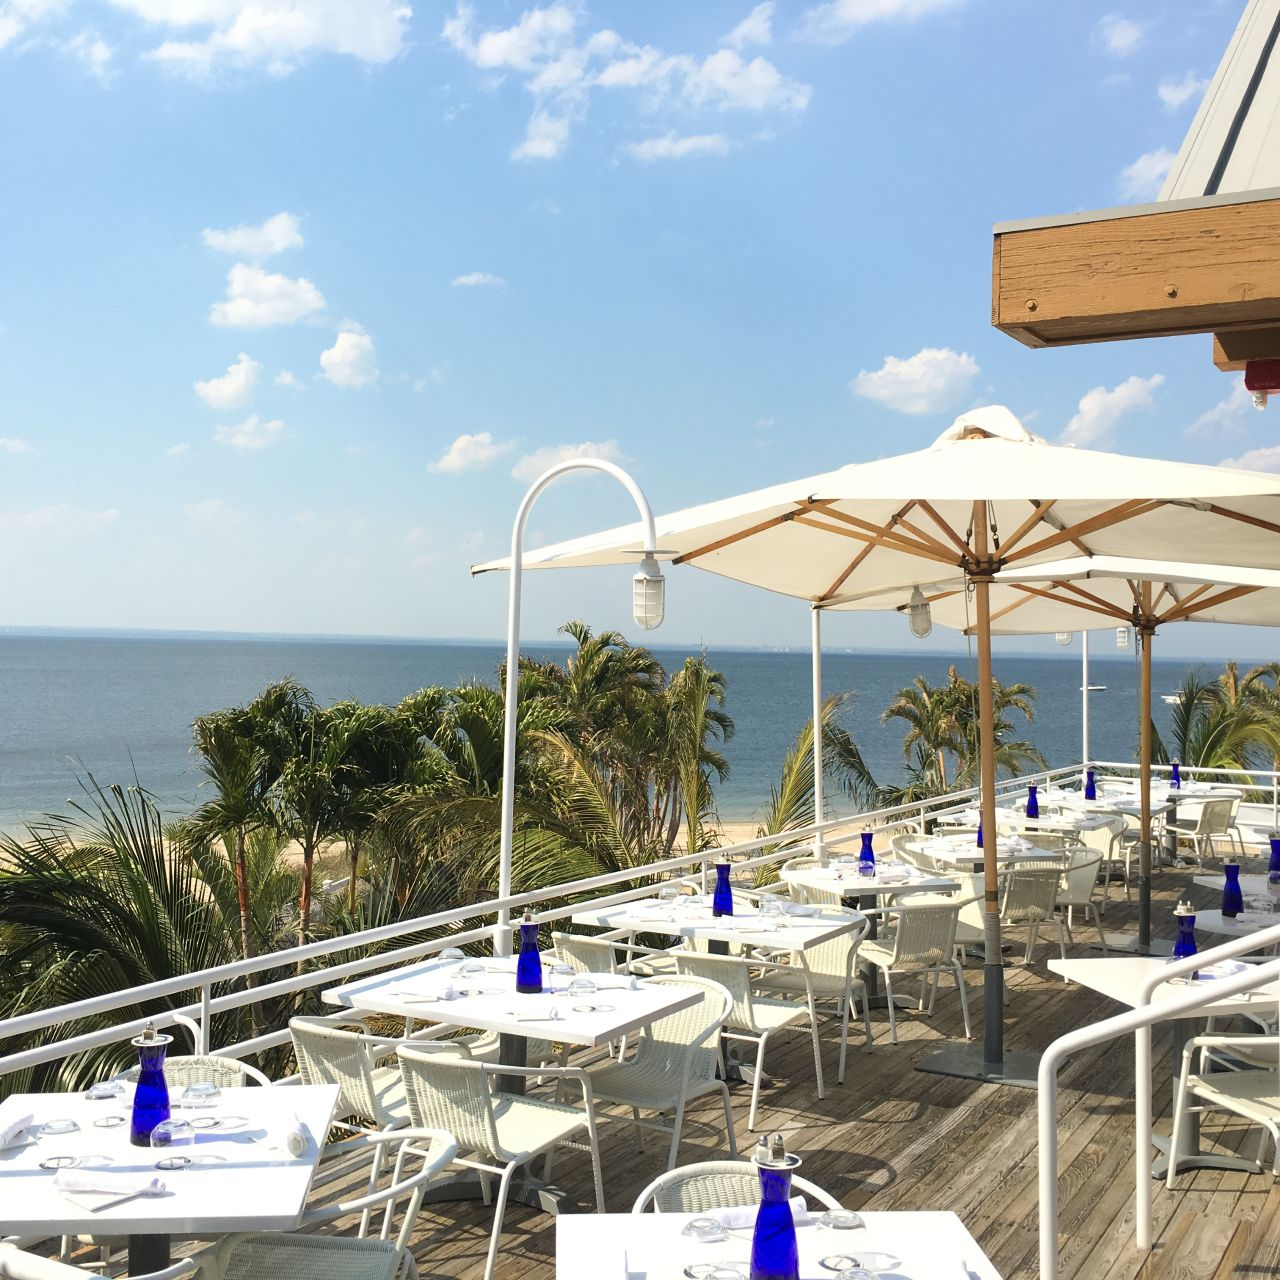 Waterfront & Outdoor Restaurants on Long Island's North Shore